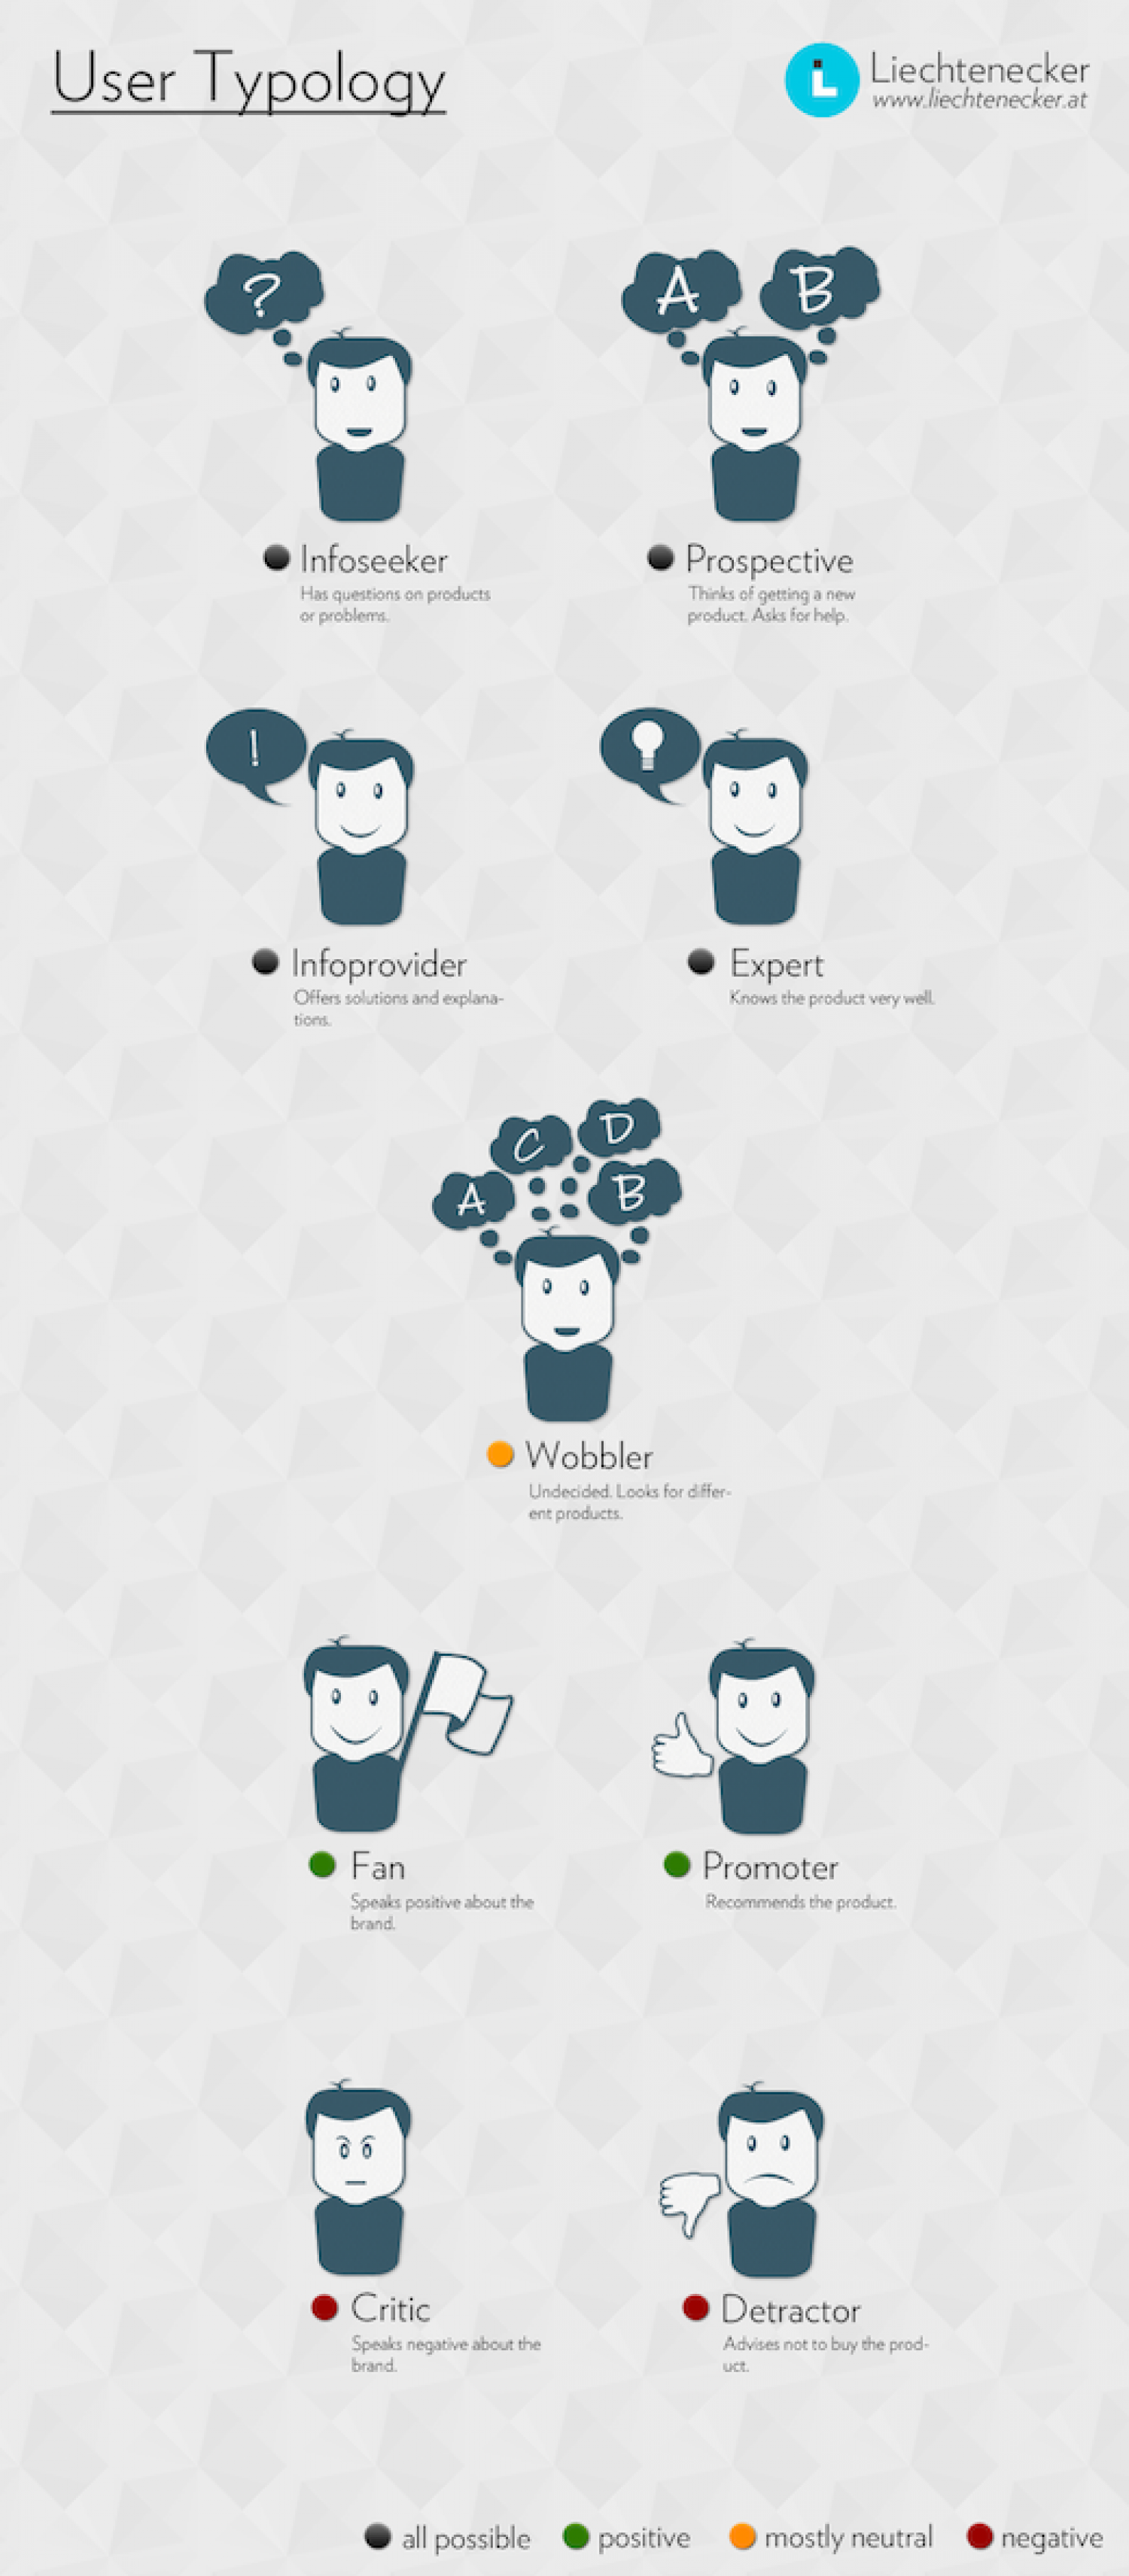 Usertypology Infographic